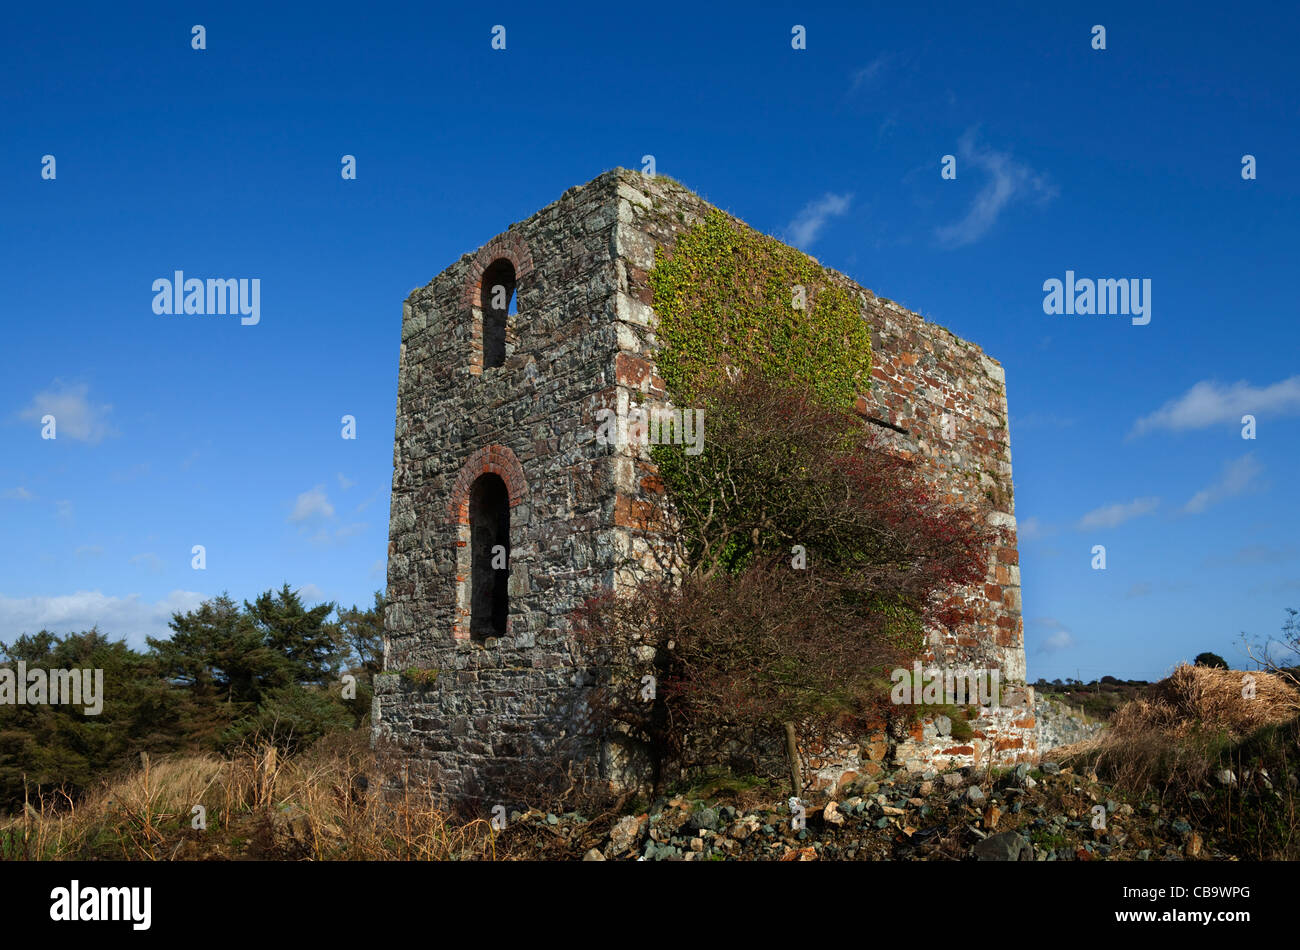 Abandoned Copper Mine Engine House, The Copper Coast Geopark, County Waterford, Ireland - Stock Image